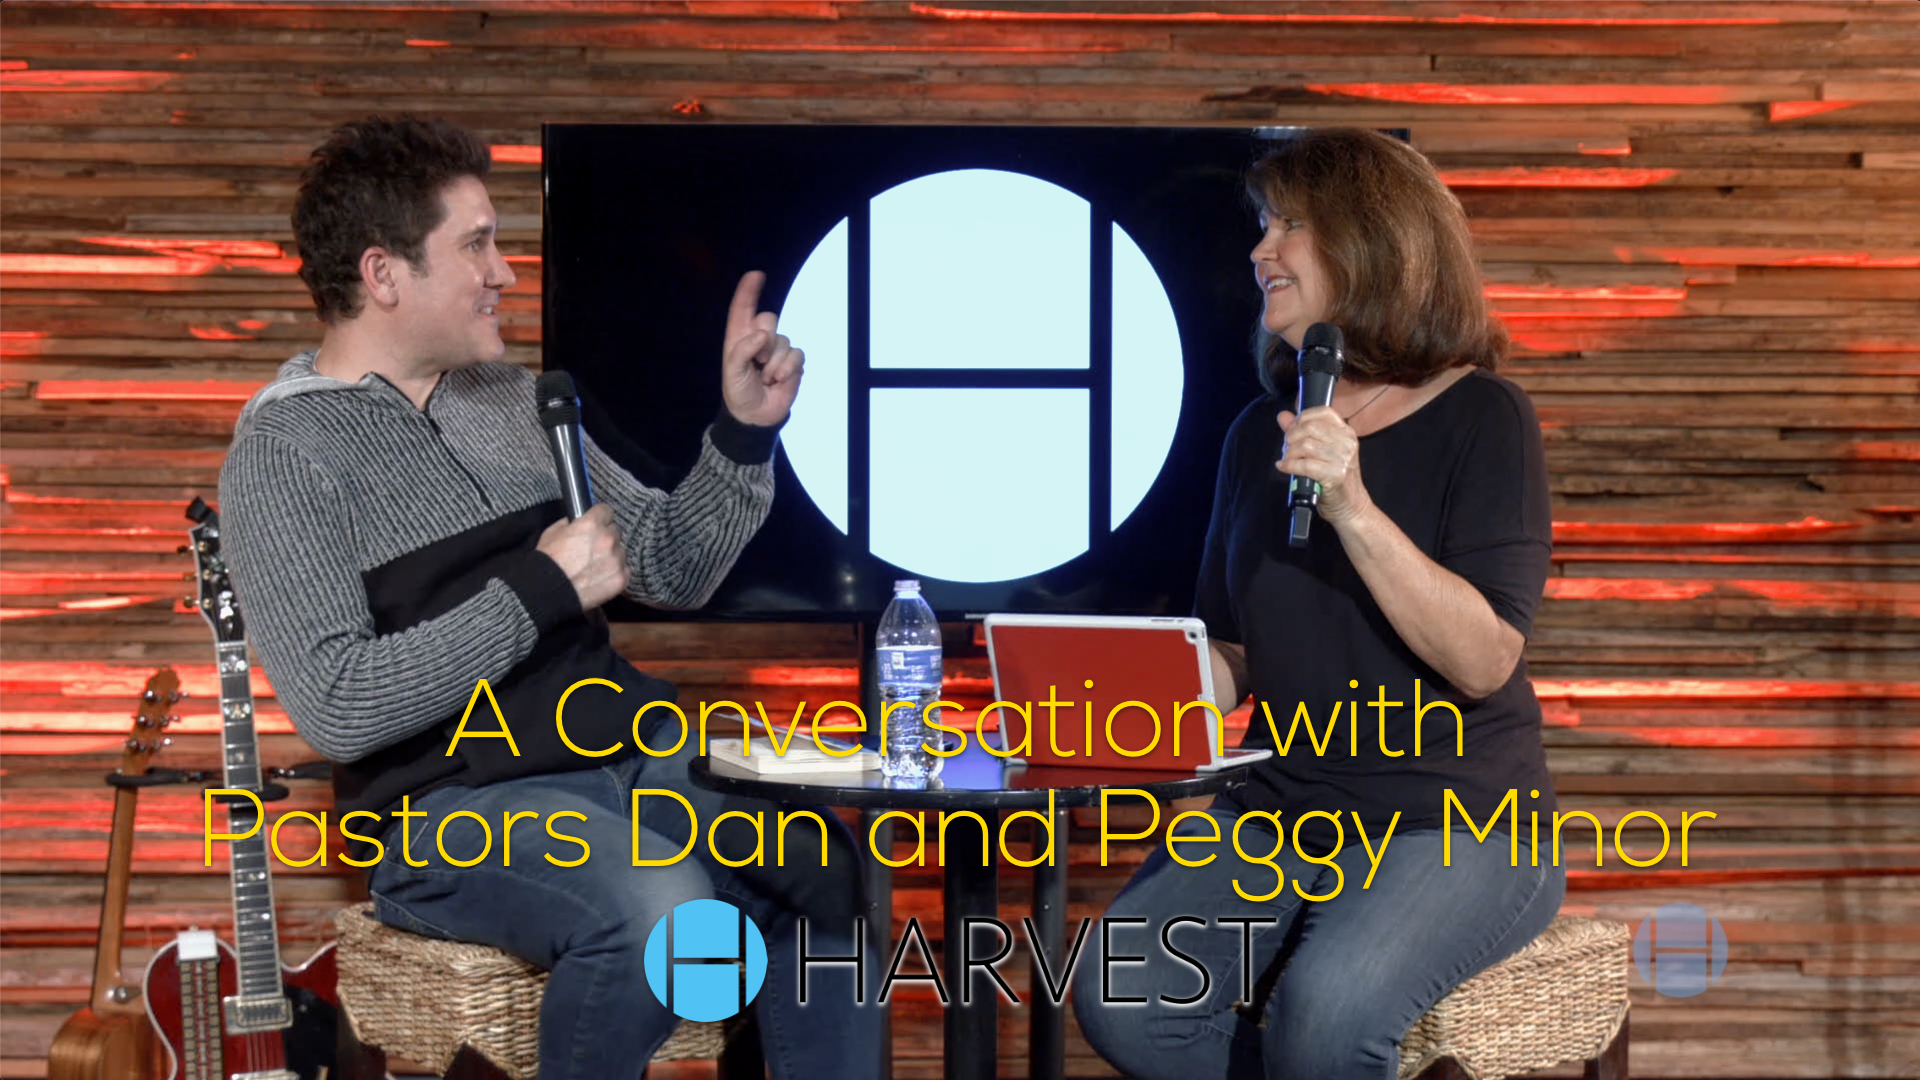 A Conversation with Pastors Dan and Peggy Minor